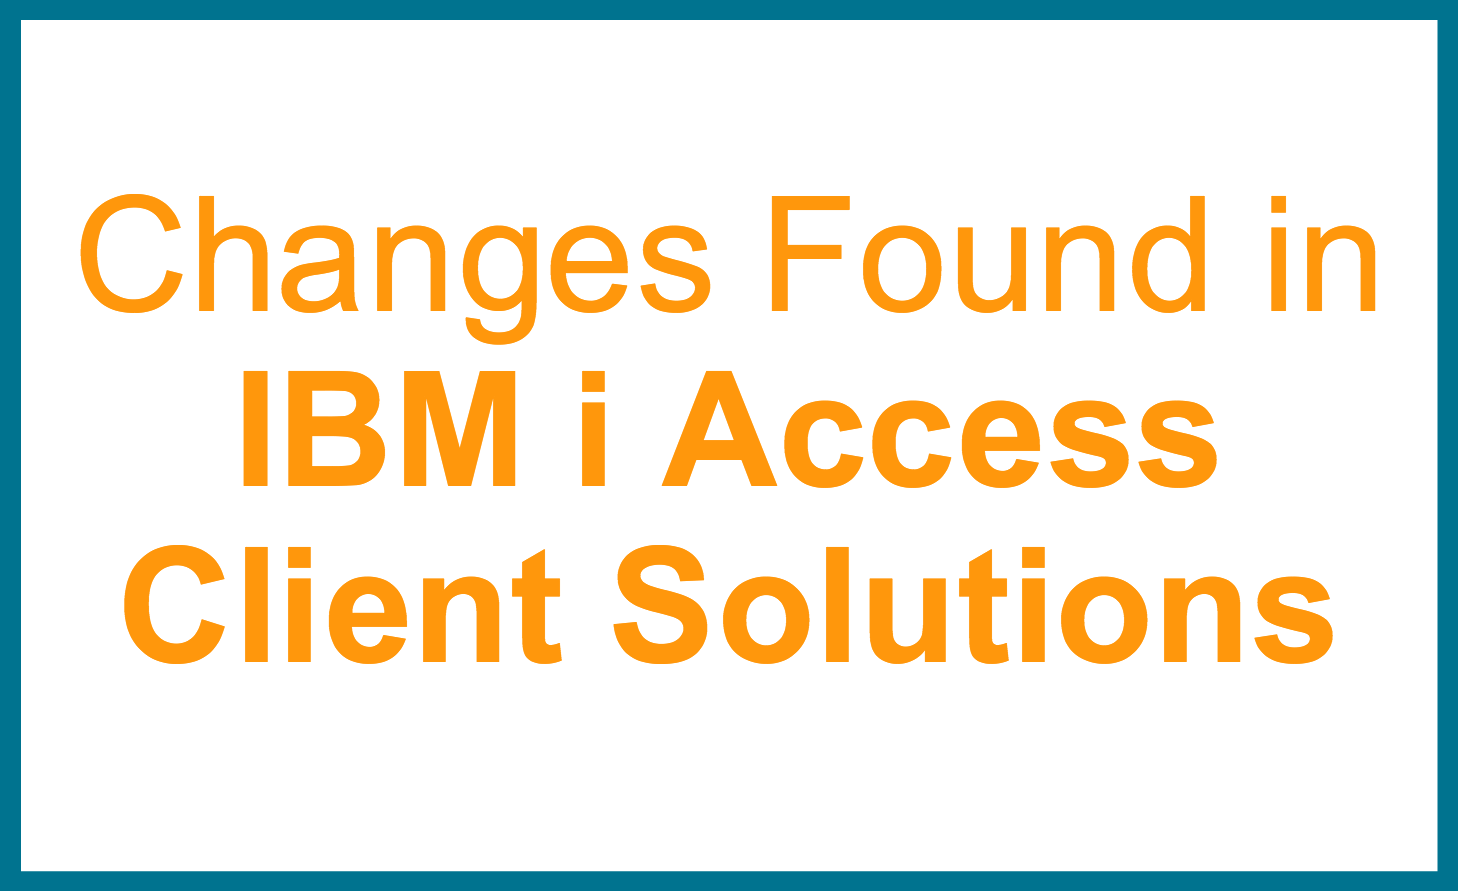 ibm_i_access_client_solutions_changes